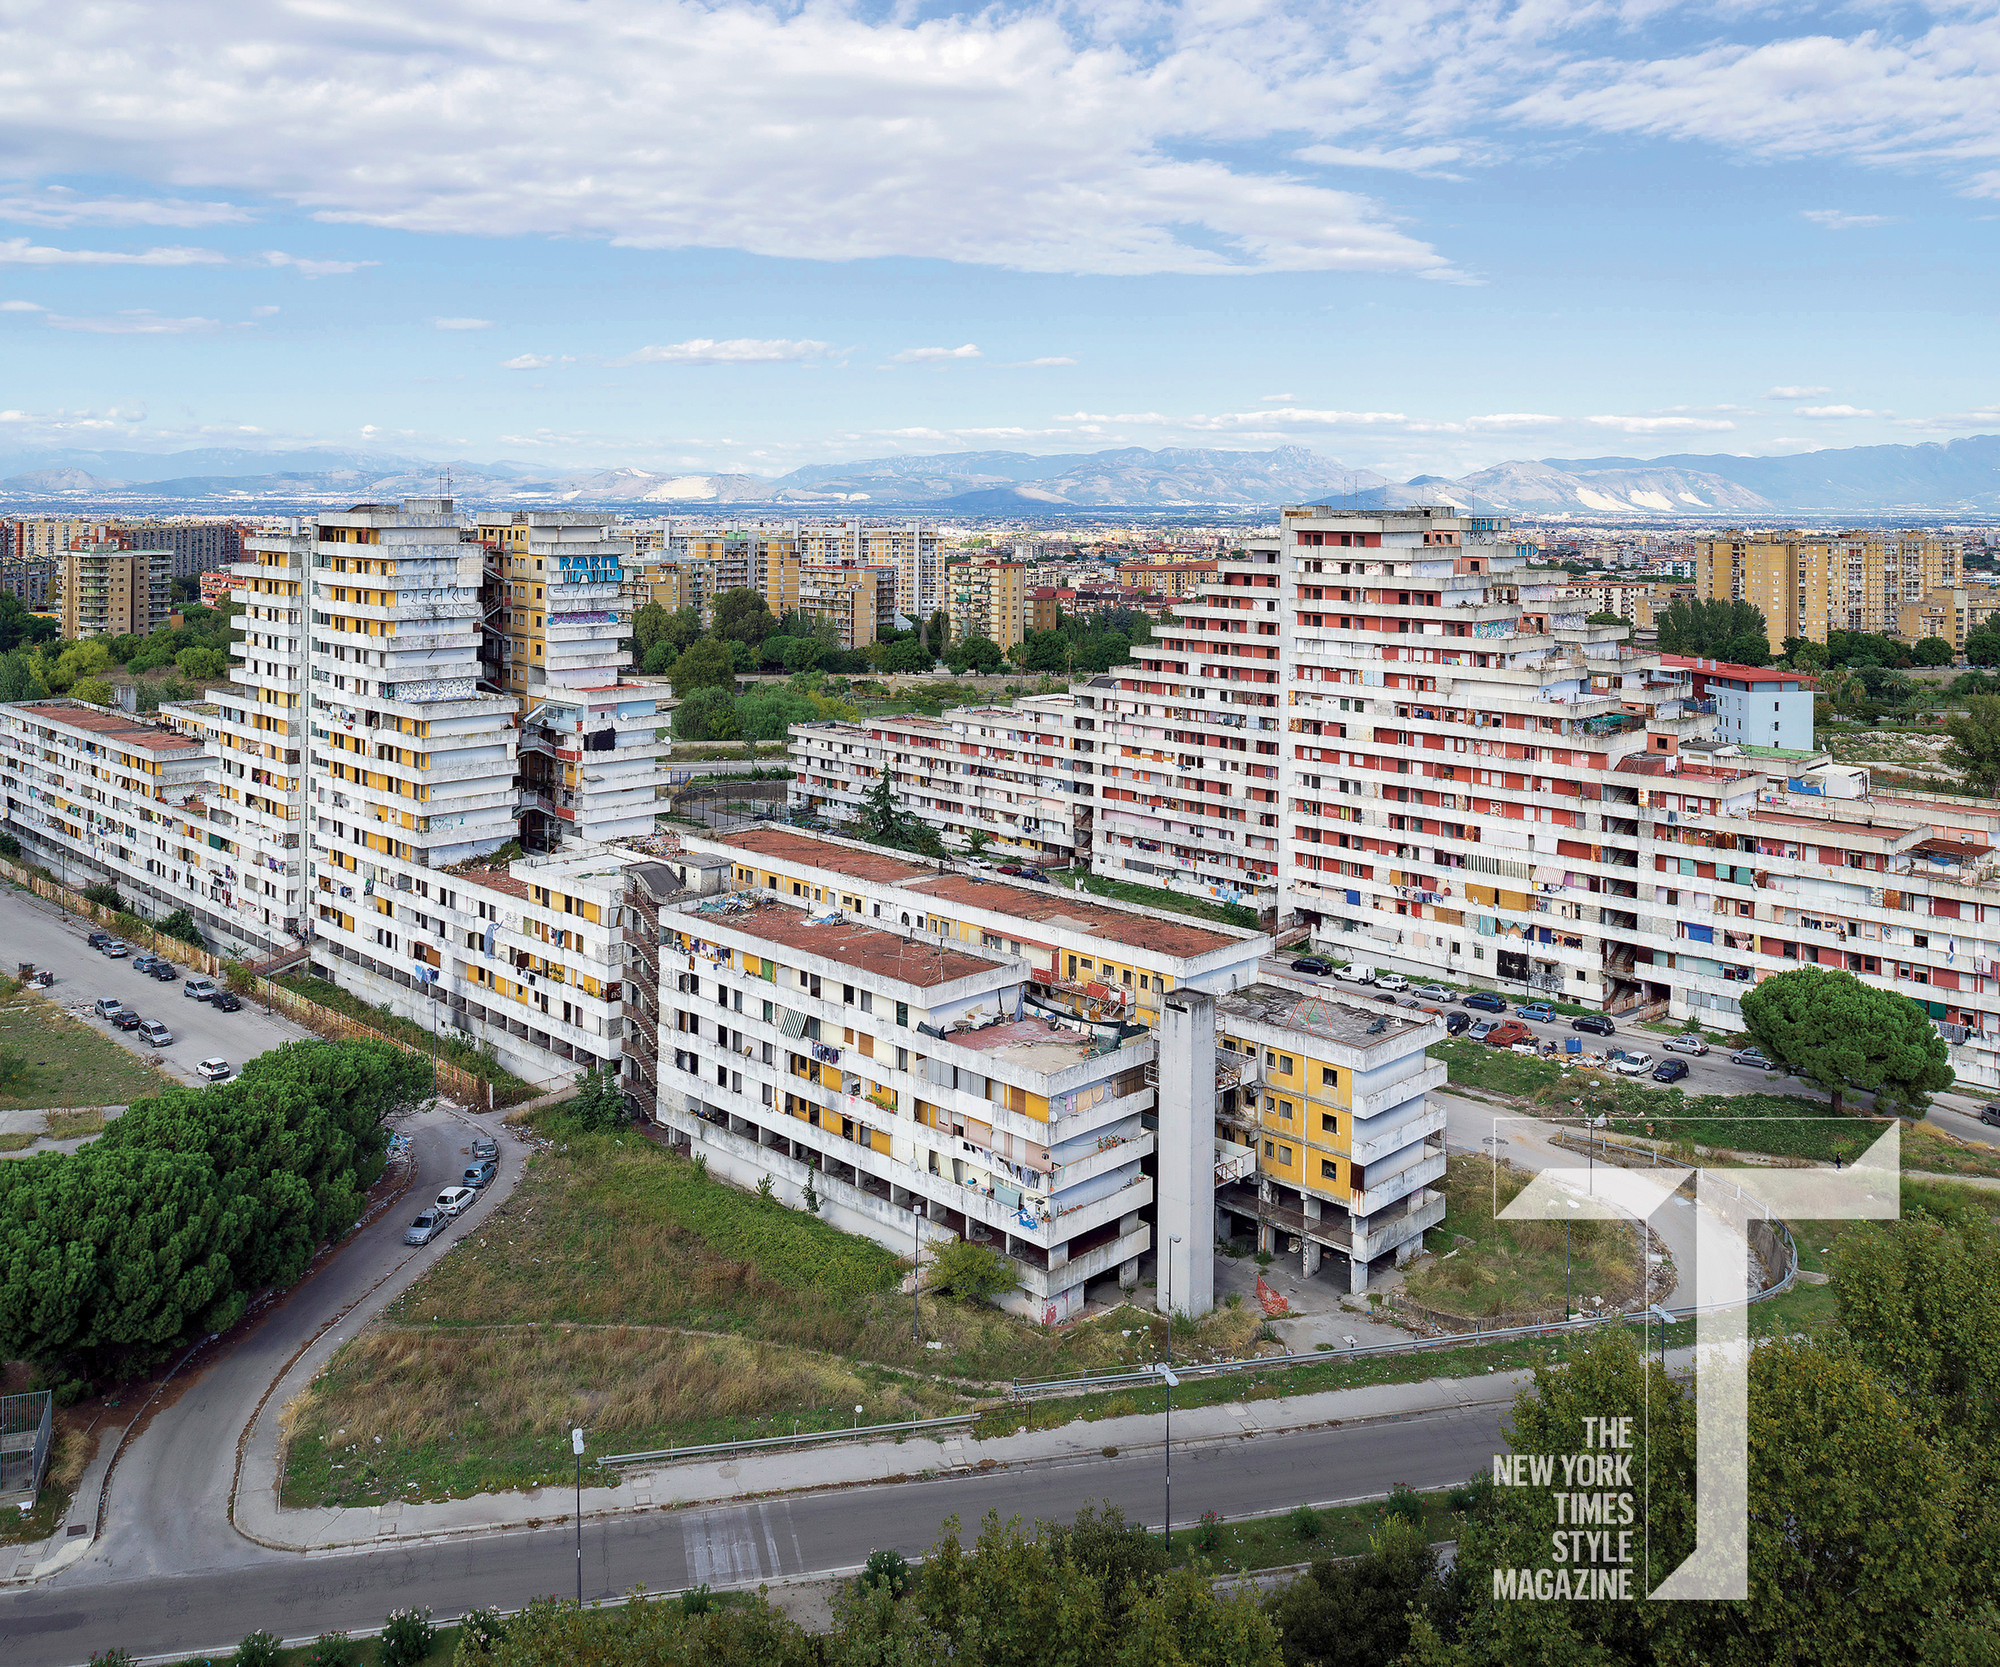 7 Leading Architects Defend the World's Most Hated Buildings, Vele di Scampia. Image © Nick Hannes/Hollandse Hoogte/Redux